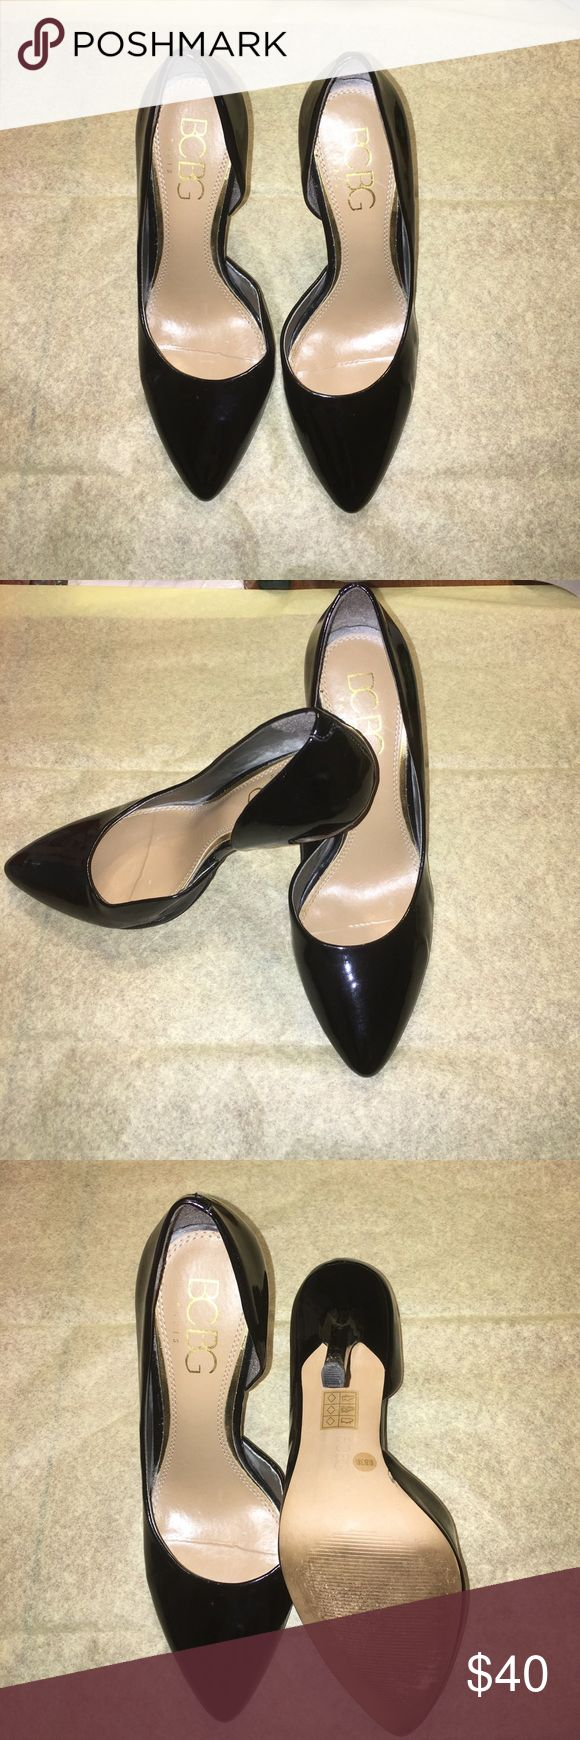 Bcbg patent leather heels Size 8 1/2. Gently used. Black patent leather BCBG Shoes Heels